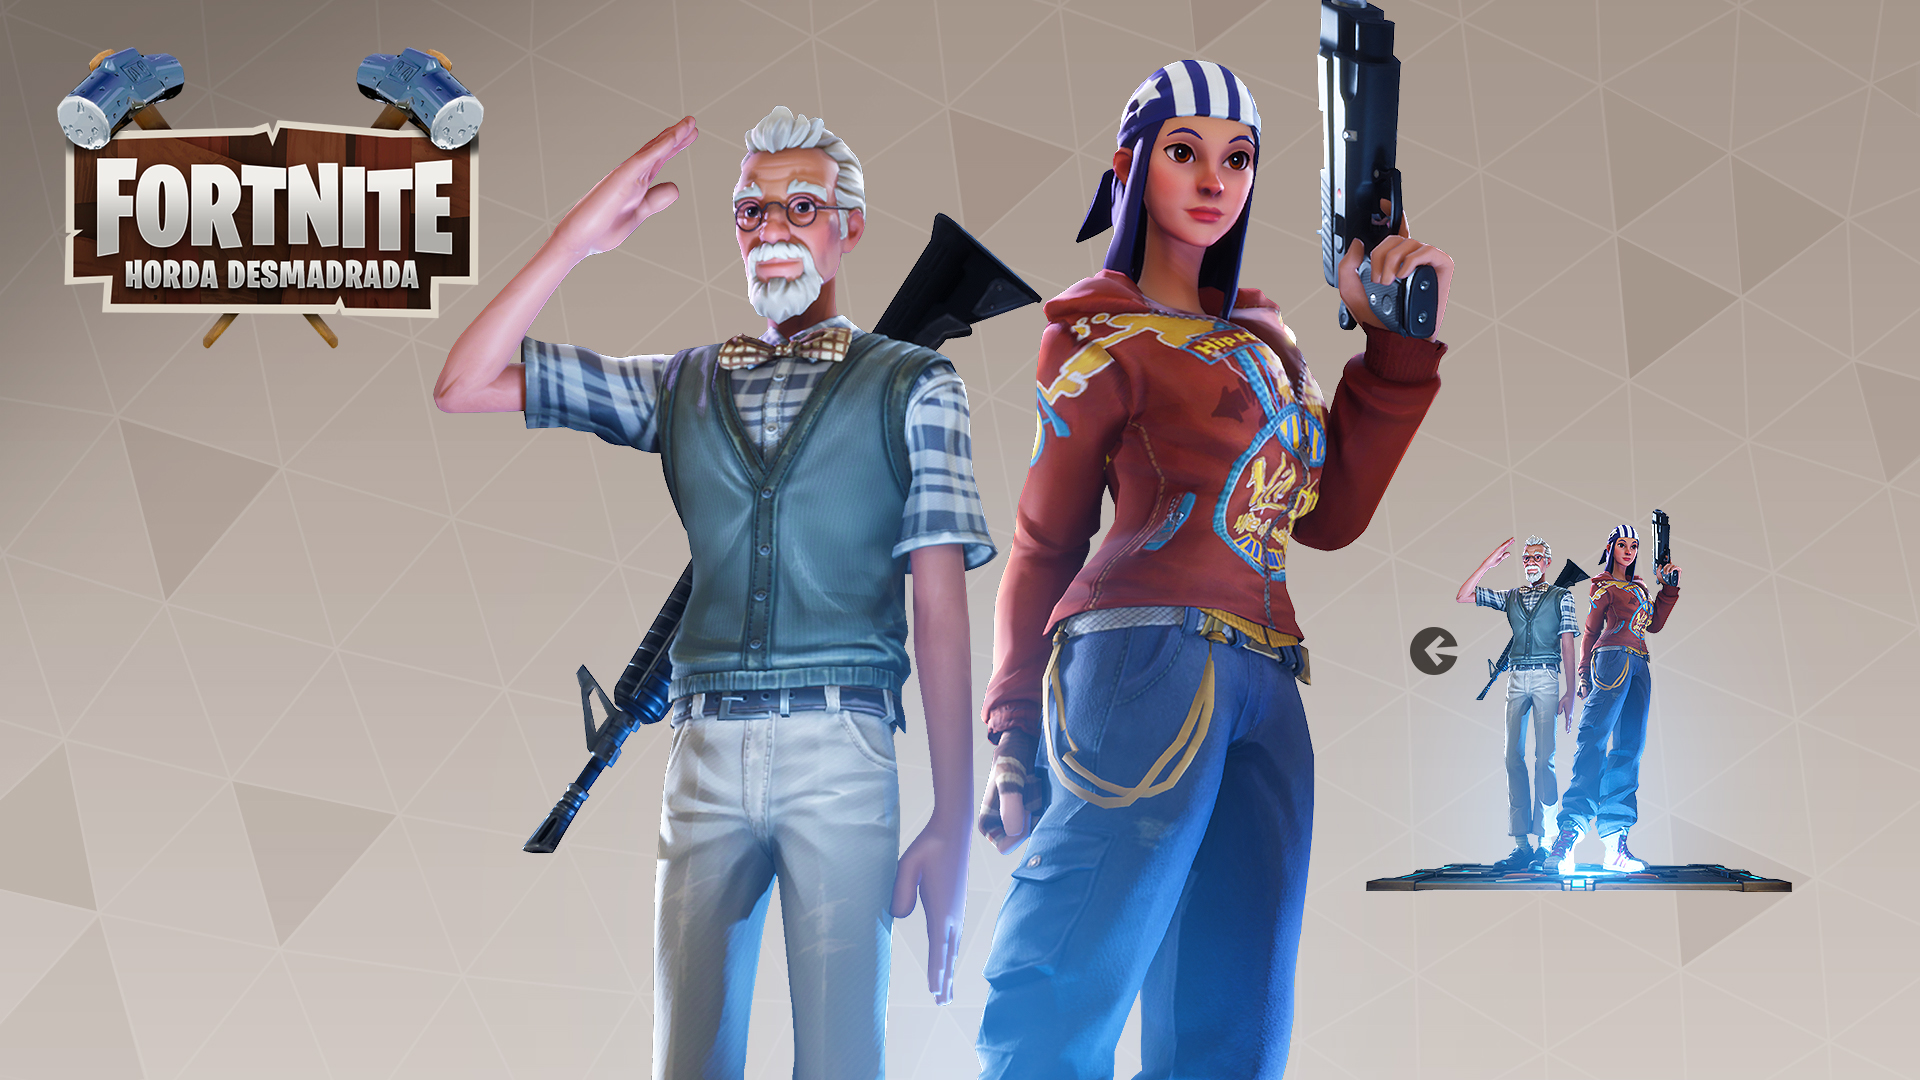 Fortnite%2Fblog%2Fea-1-7-patch-notes%2FES-MX-HB-Defenders-1920x1080-f336200a5c56df6ca007f4c9b9b4cb83f1d14aa5